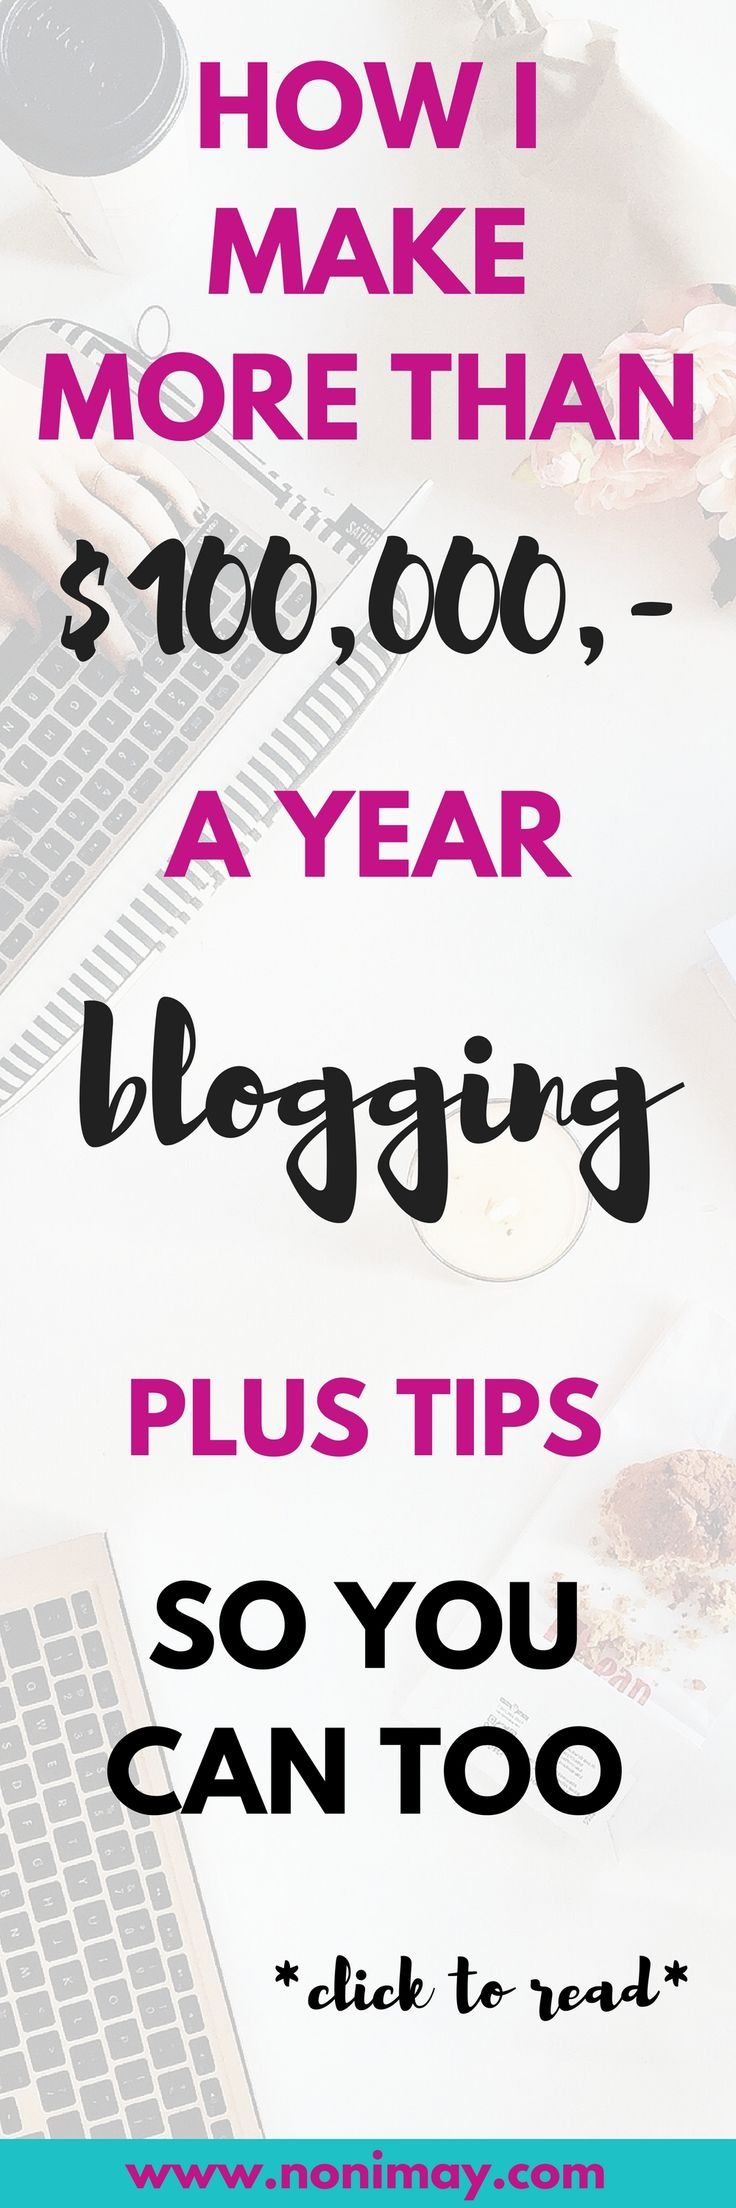 How I make more than $100,000 a year blogging plus tips so you can too